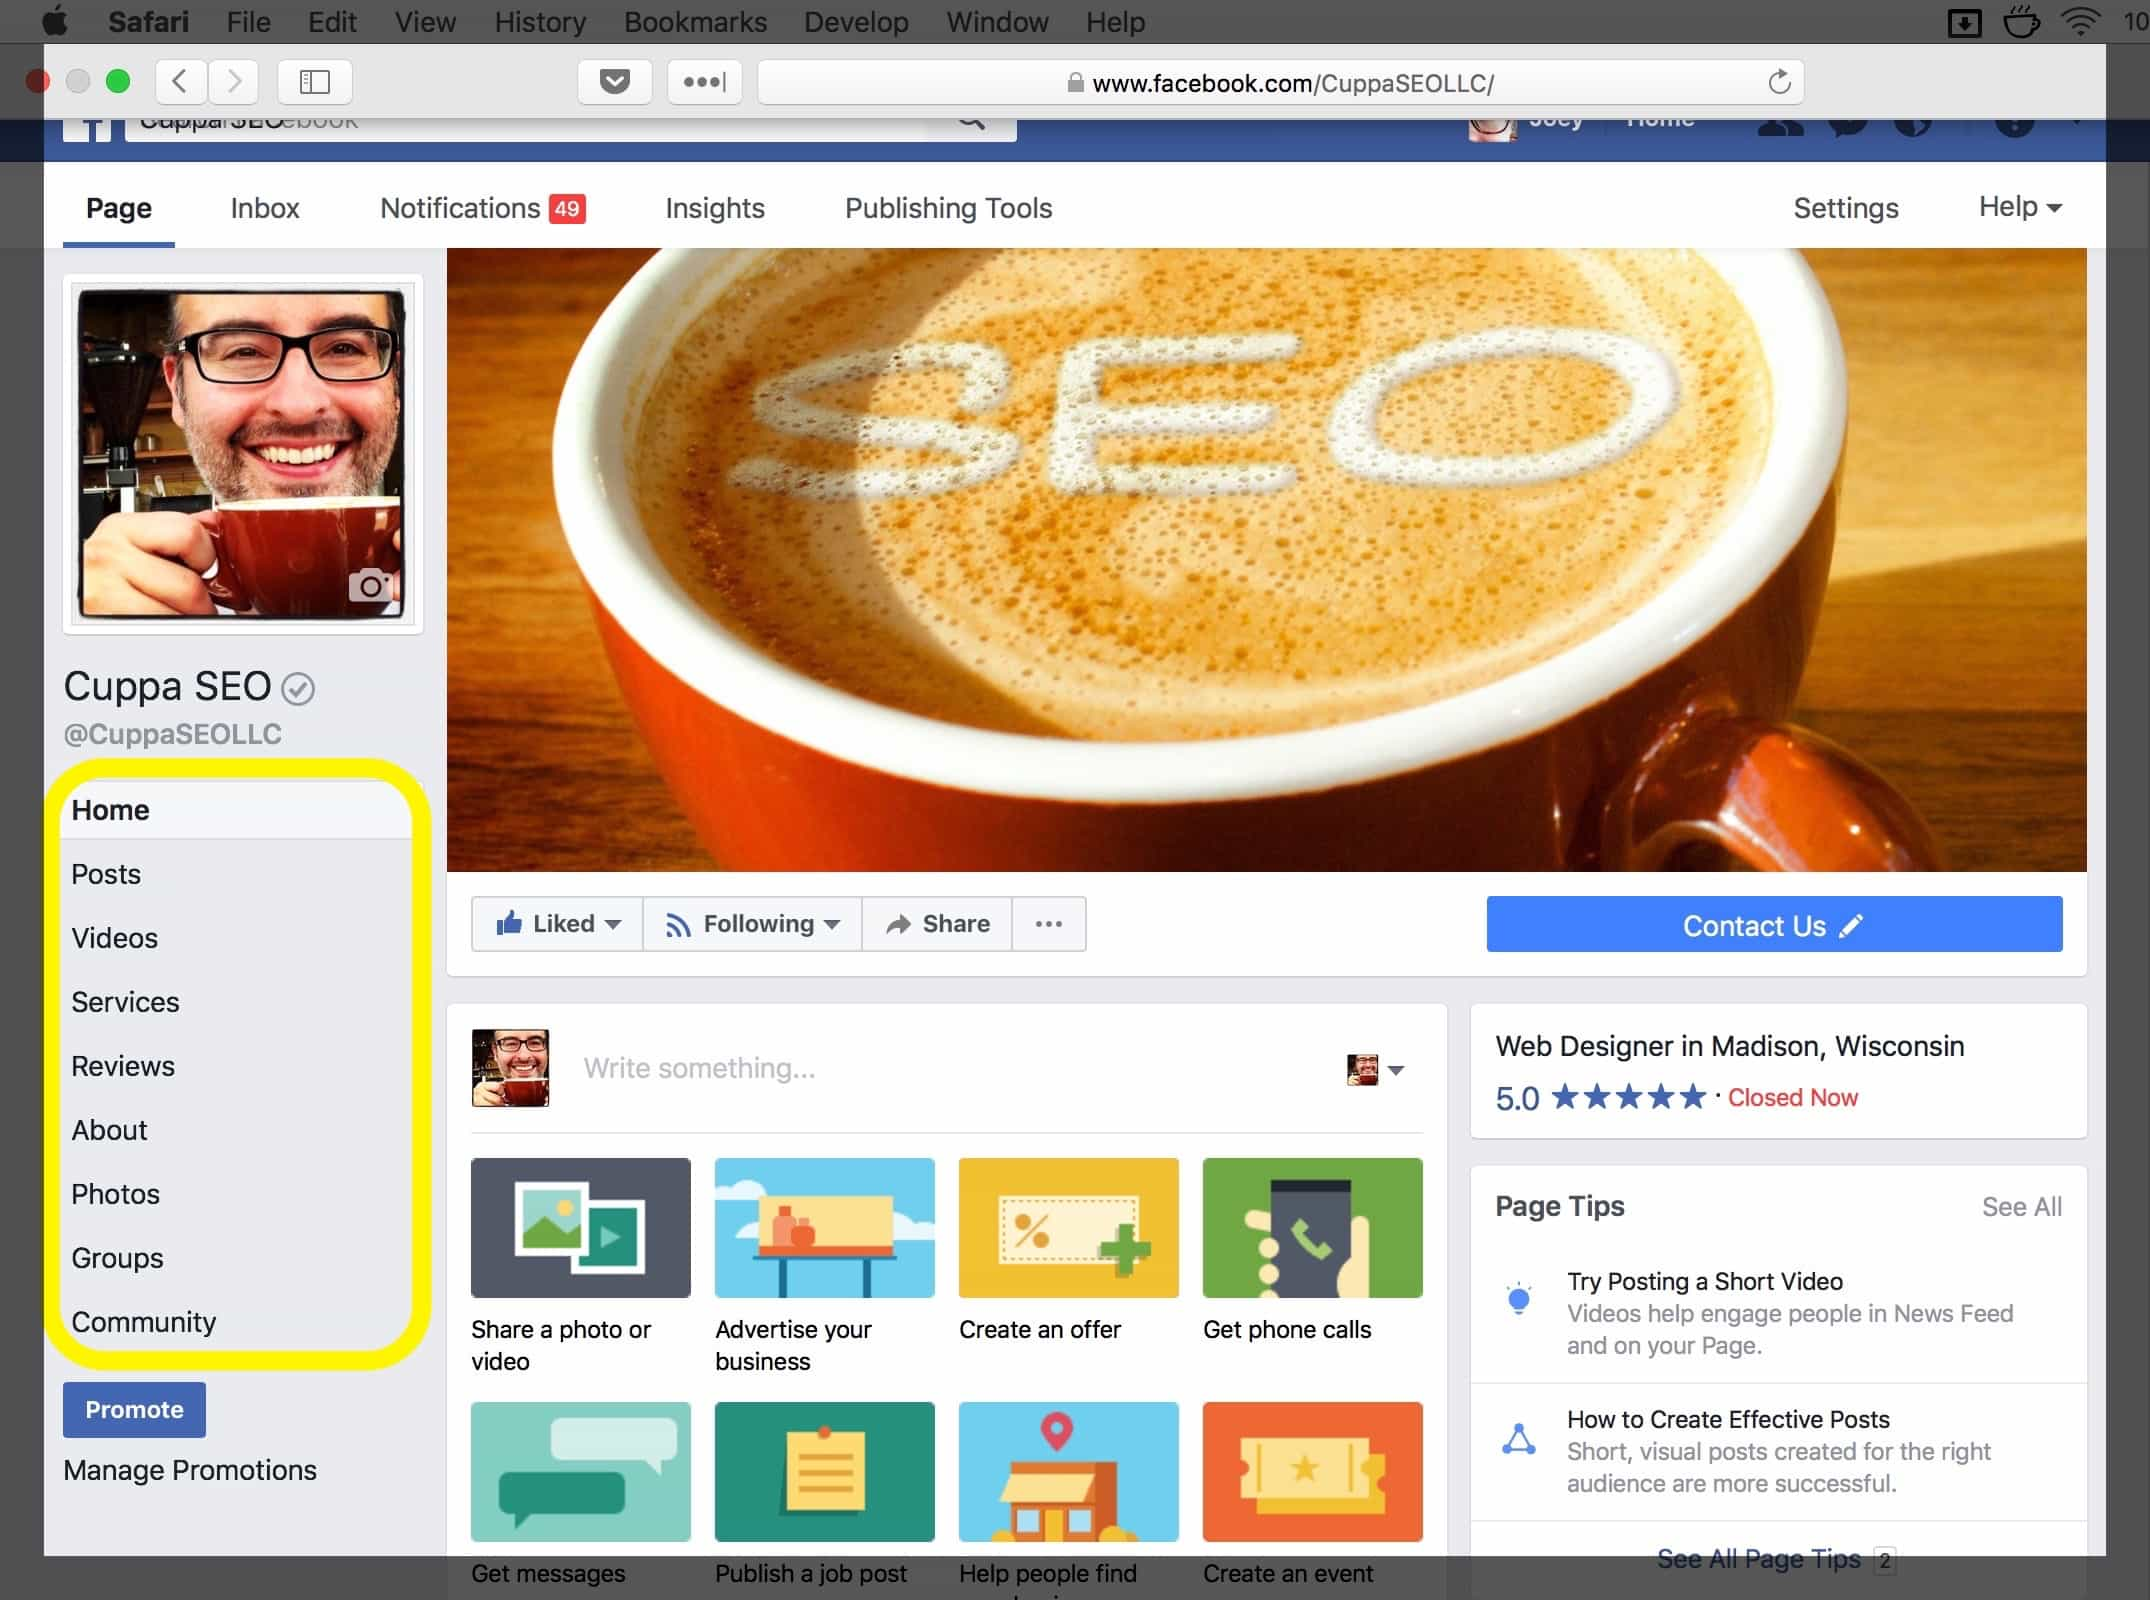 Facebook SEO Tips from Cuppa SEO Web Design